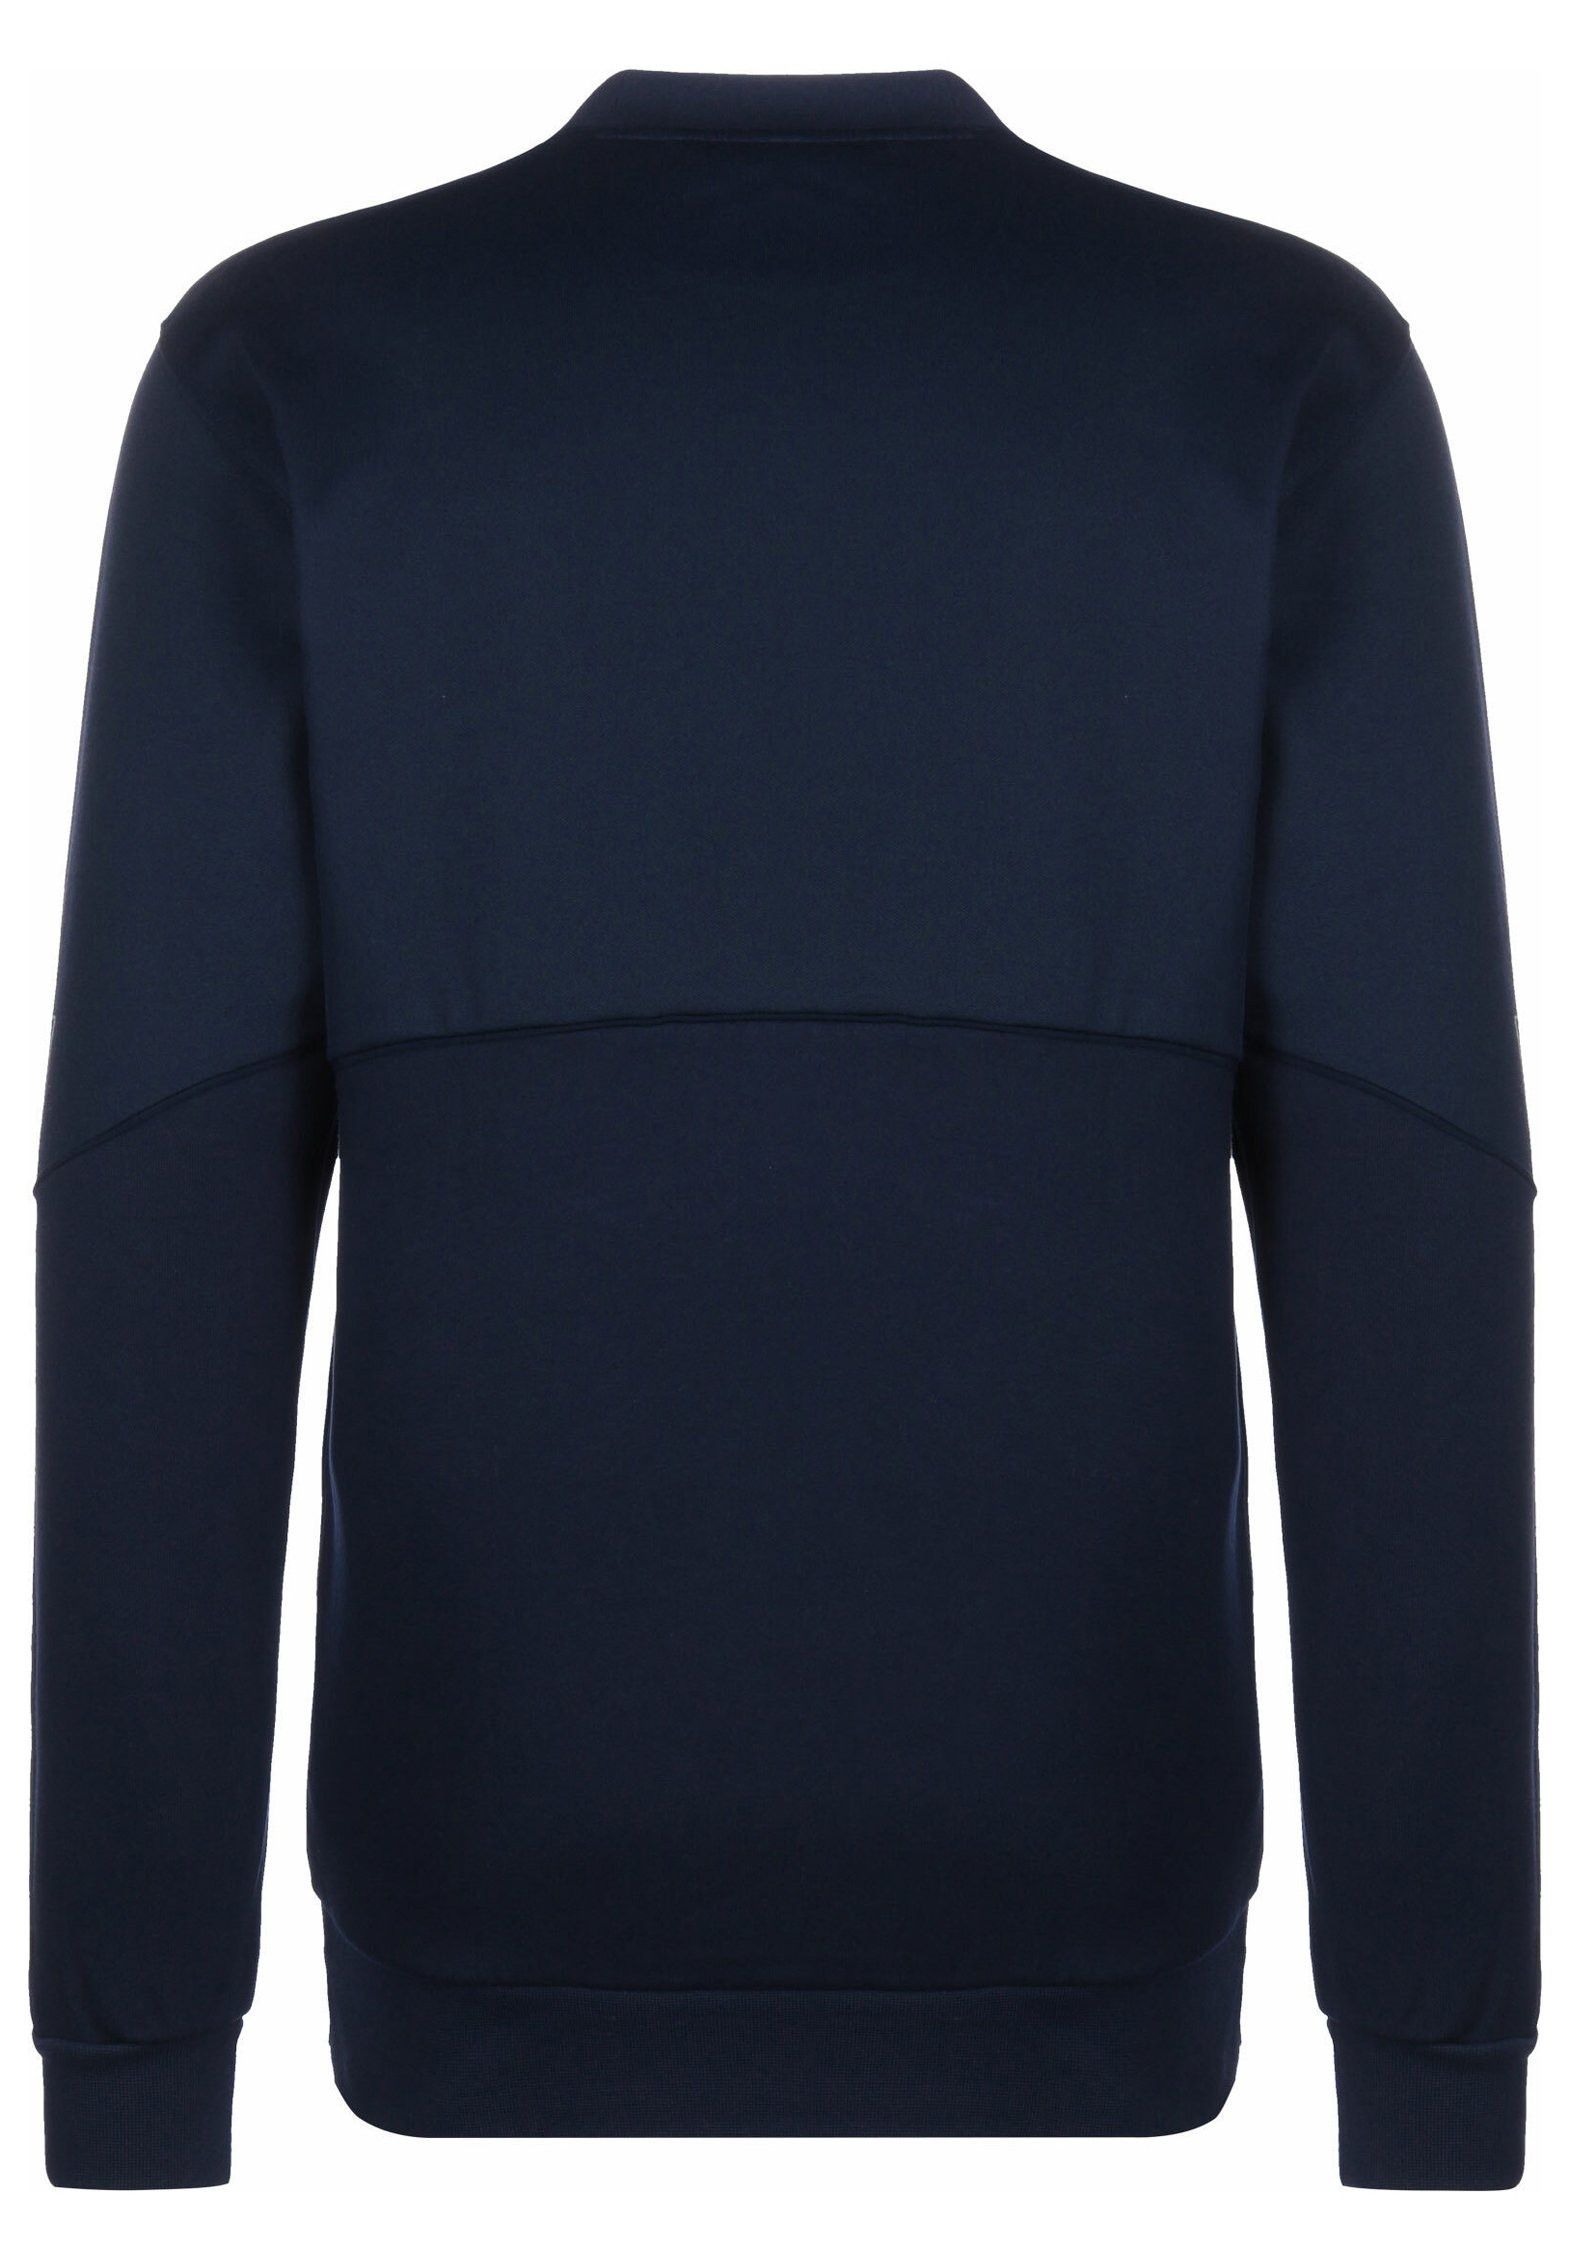 adidas Originals Sweatshirt - night indigo